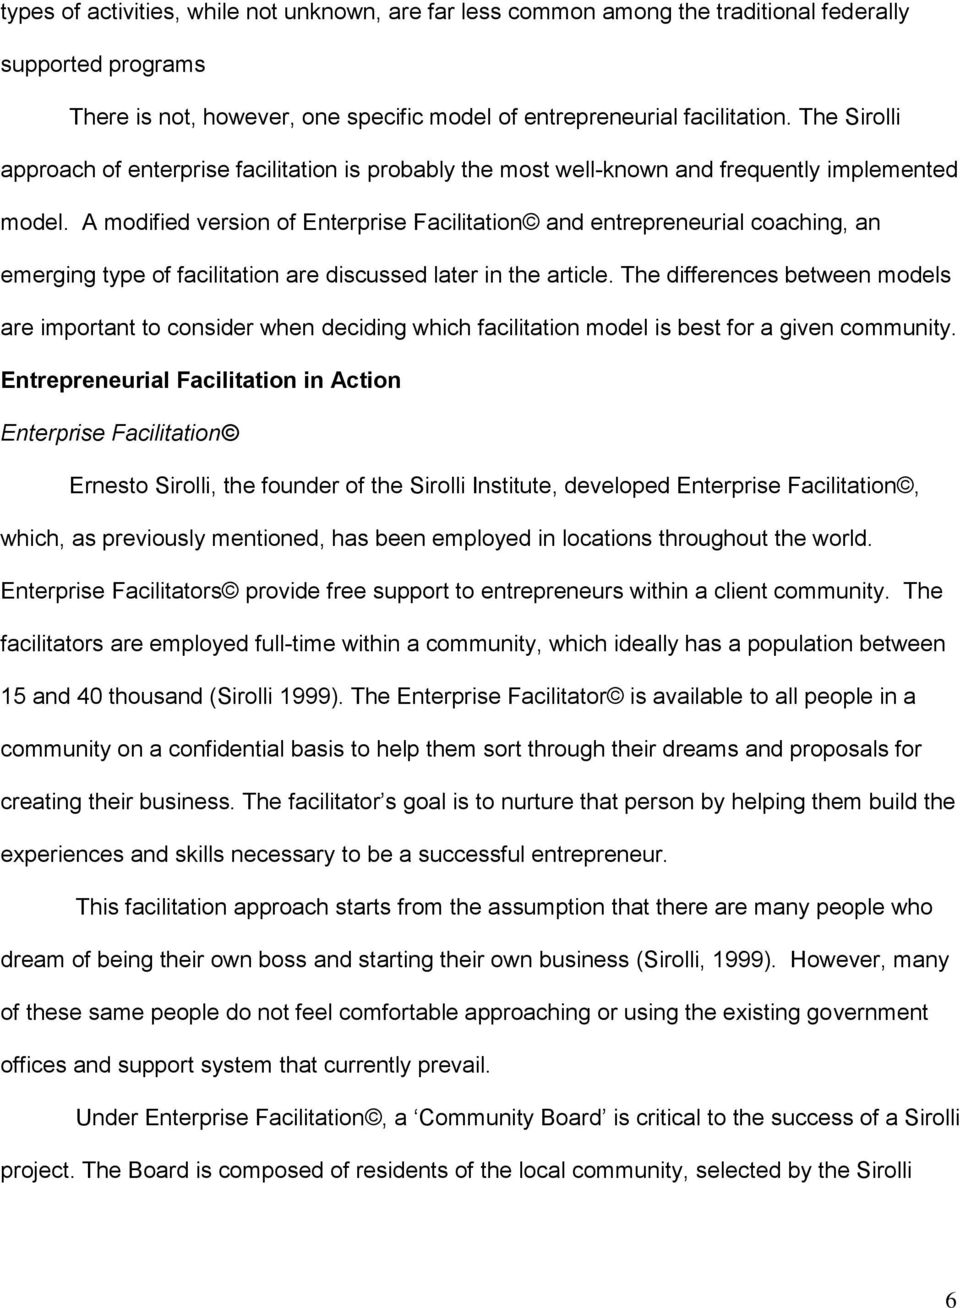 A modified version of Enterprise Facilitation and entrepreneurial coaching, an emerging type of facilitation are discussed later in the article.